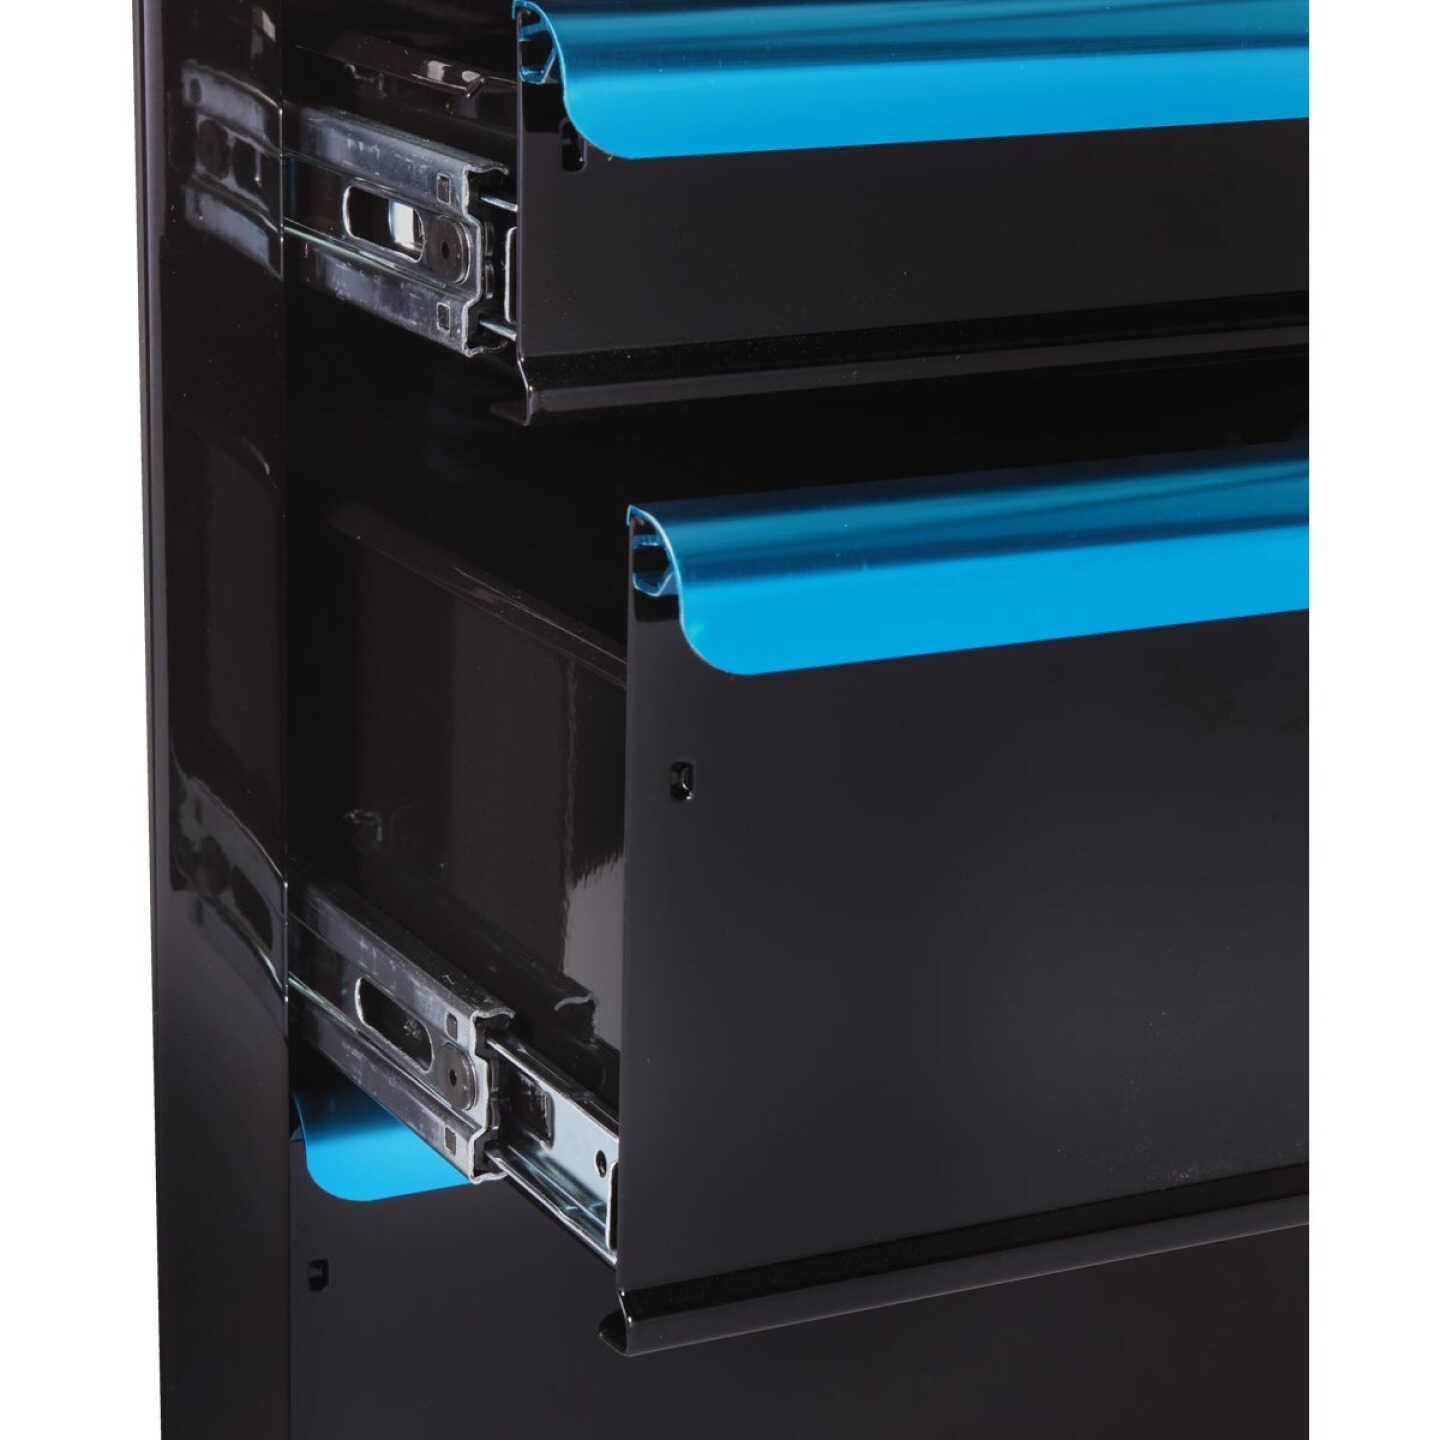 Channellock 26 In. 5-Drawer Tool Roller Cabinet Image 5